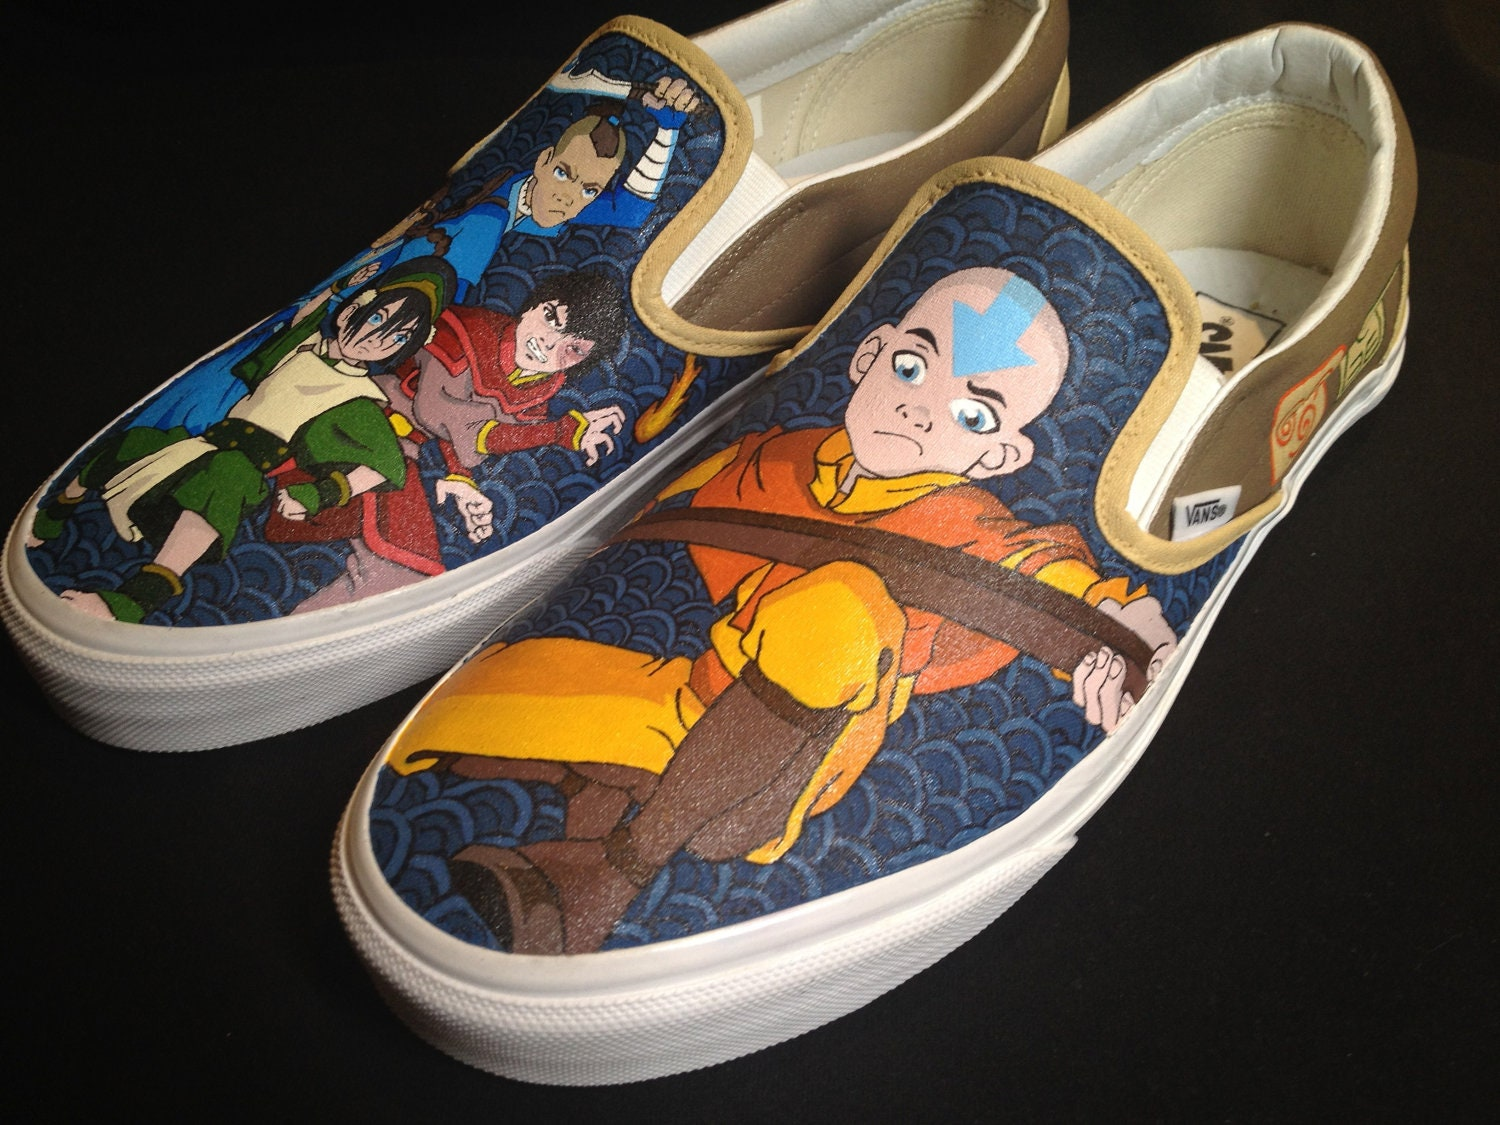 Custom Hand Painted Shoes Avatar the Last Airbender by RyTee: www.etsy.com/listing/108646604/custom-hand-painted-shoes-avatar-the